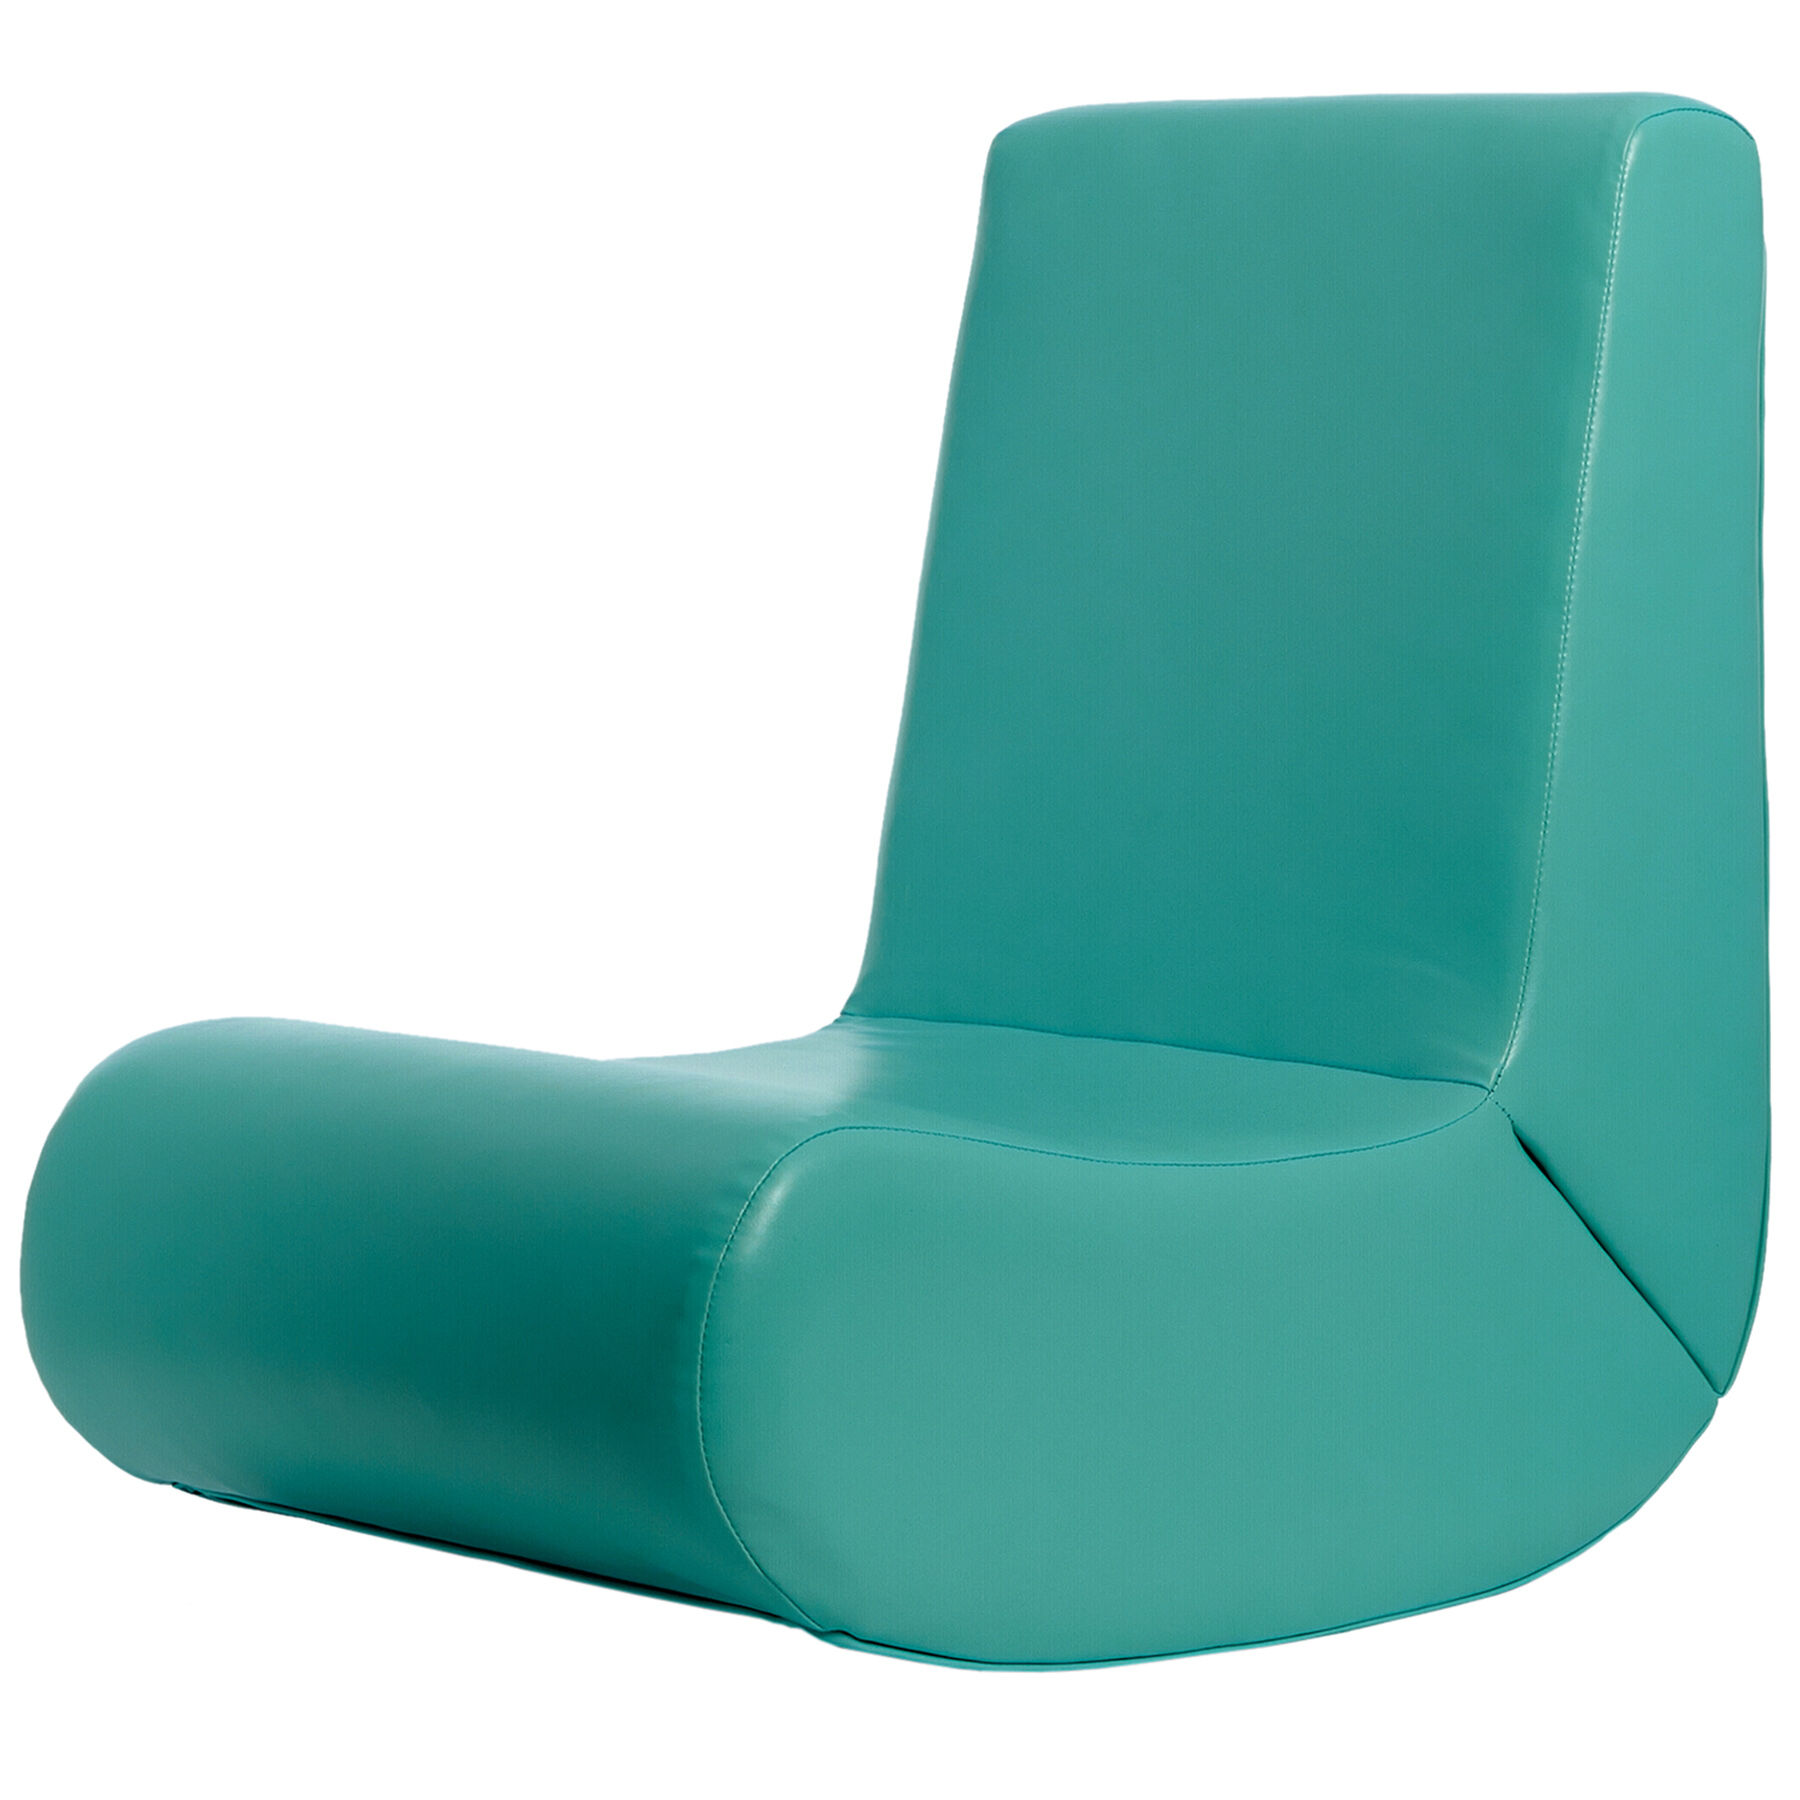 floor rocking chair india chairs covers for sale green rocker at home